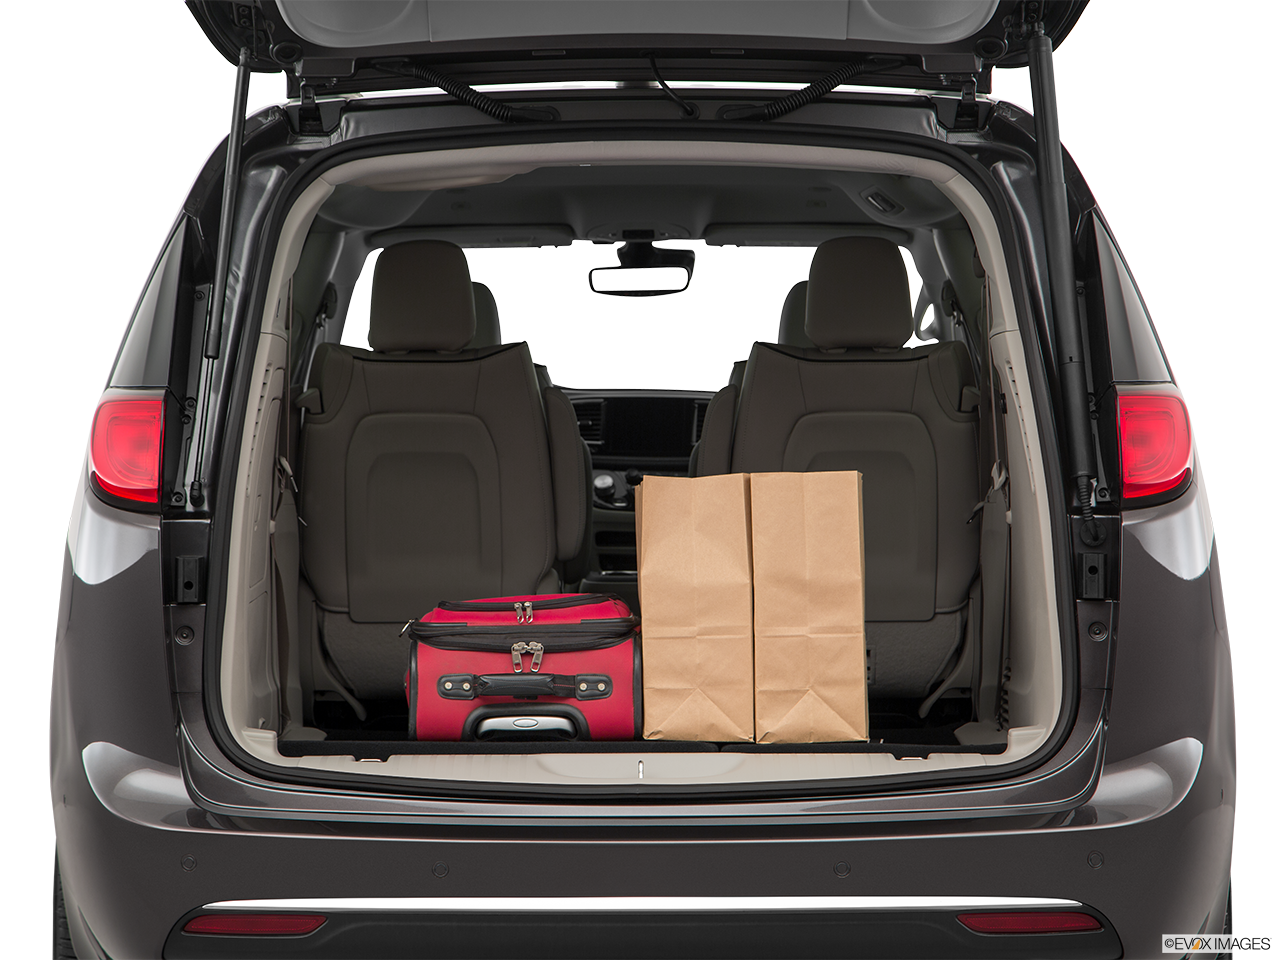 Trunk view of the Chrysler Pacifica